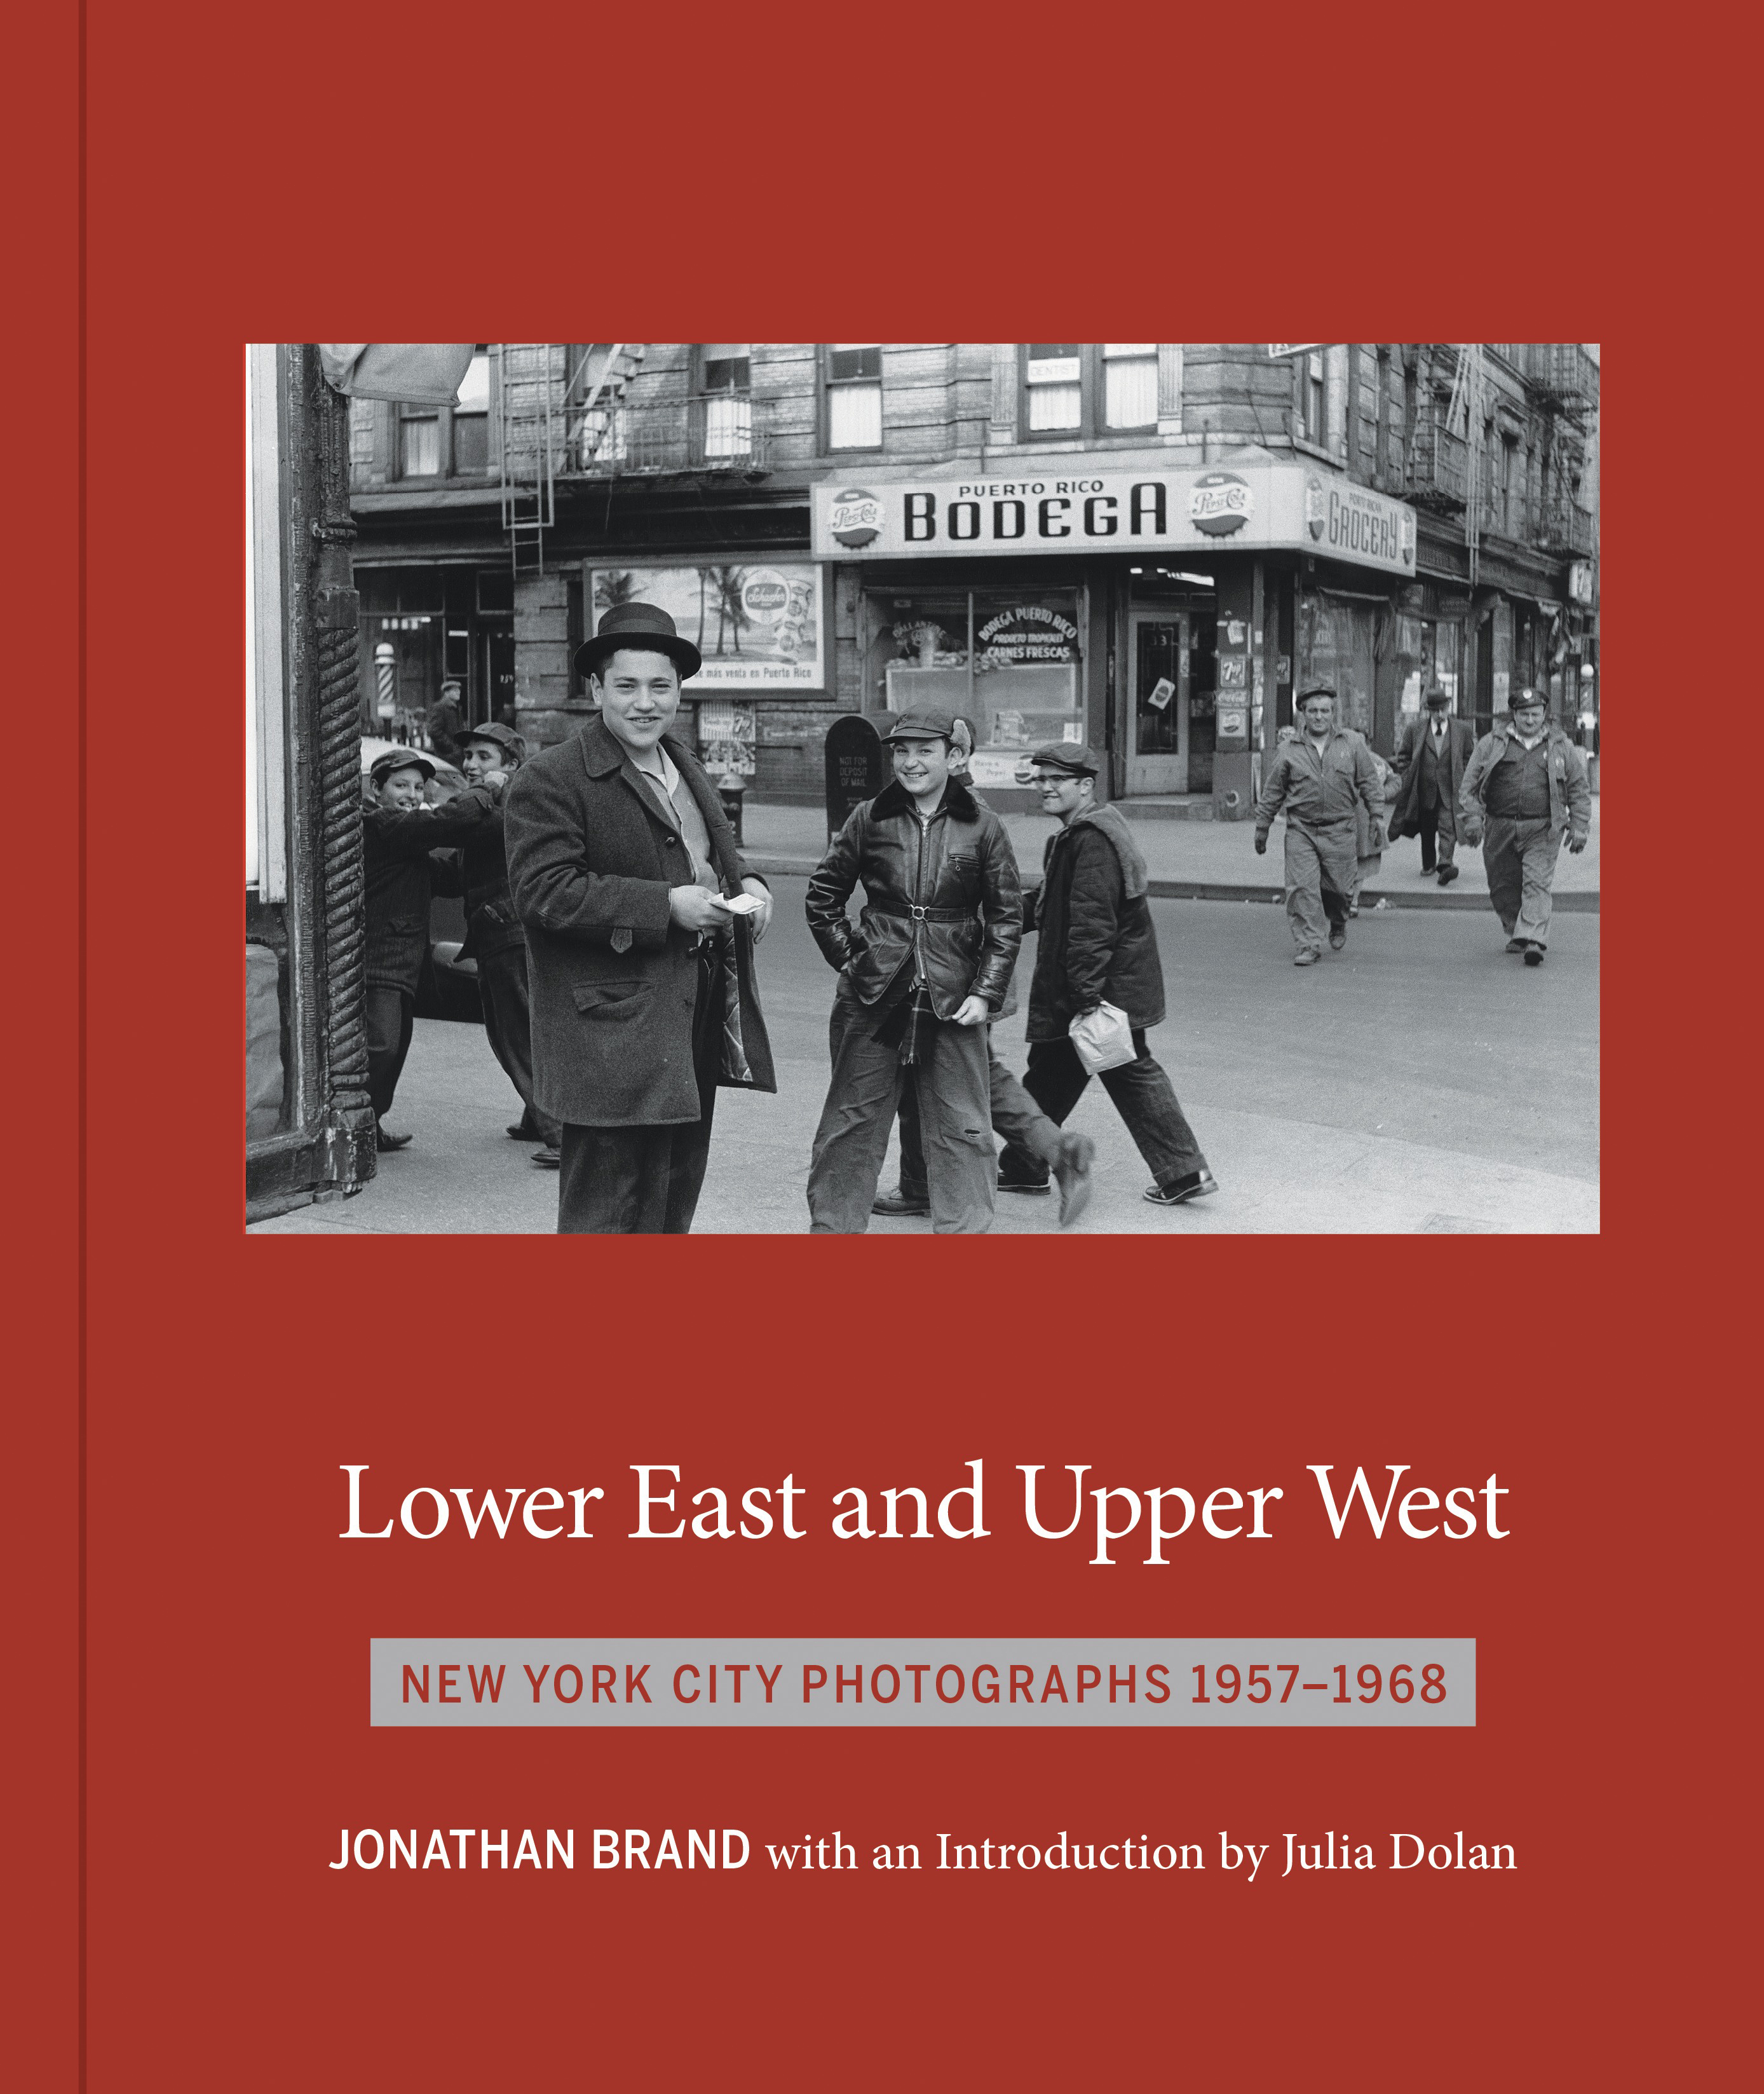 powerHouse Books Launch: Lower East and Upper West by Jonathan Brand — presented by Mark Berghash